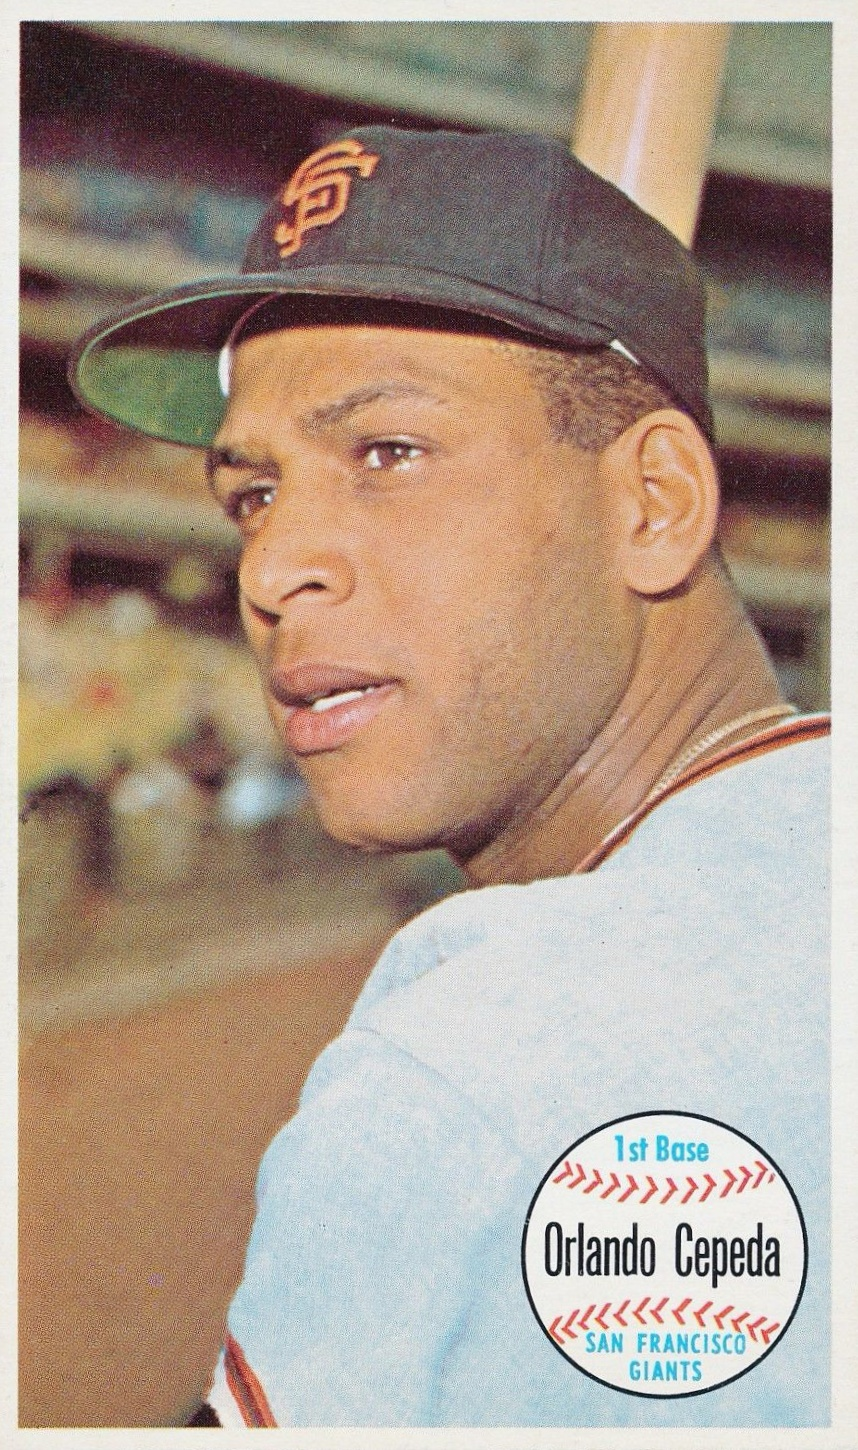 Top 10 Orlando Cepeda Baseball Cards 1